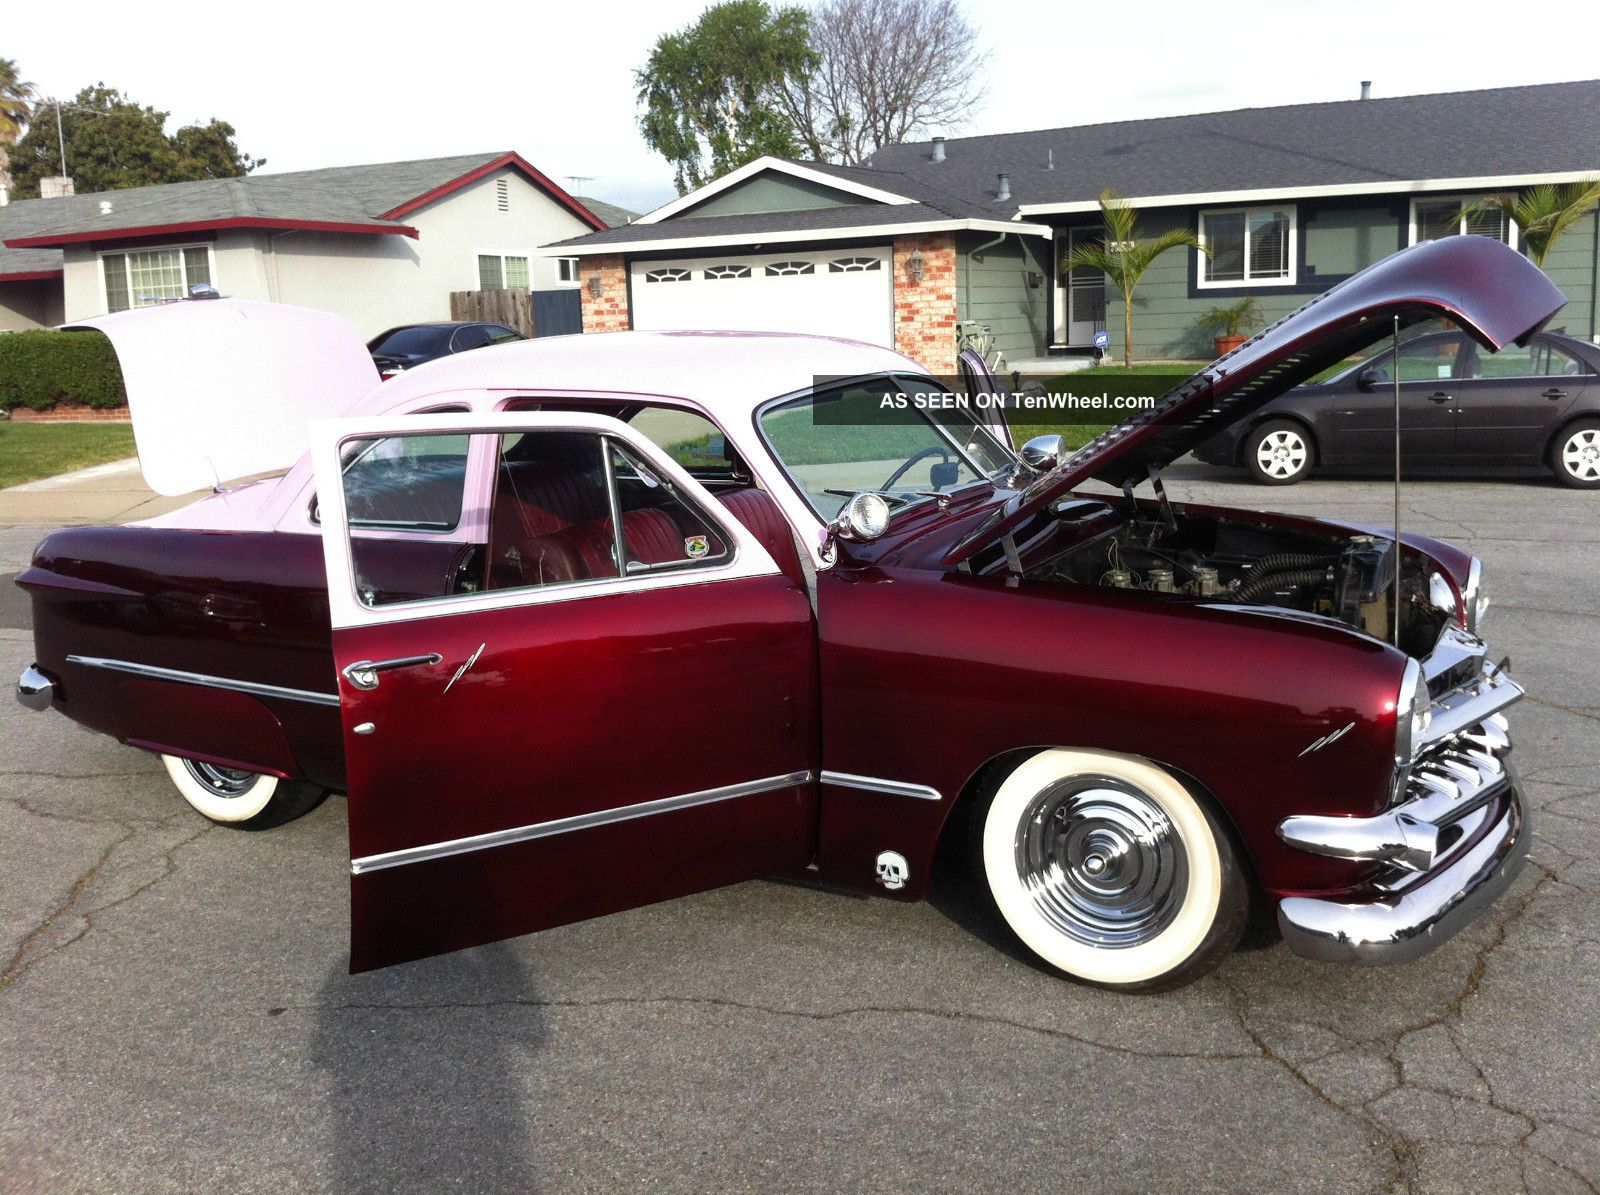 1949 Ford Shoebox Custom Coupe 127 Pictures And A Video Other photo 2